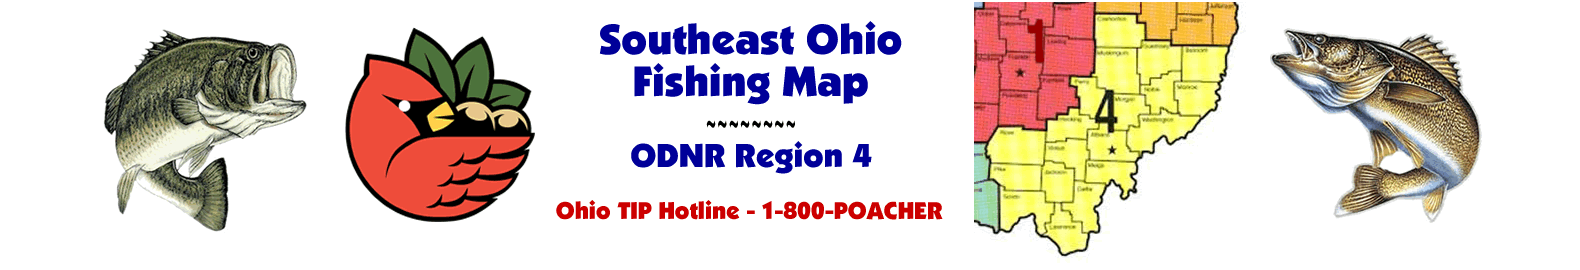 Southeast Ohio - ODNR Region 4